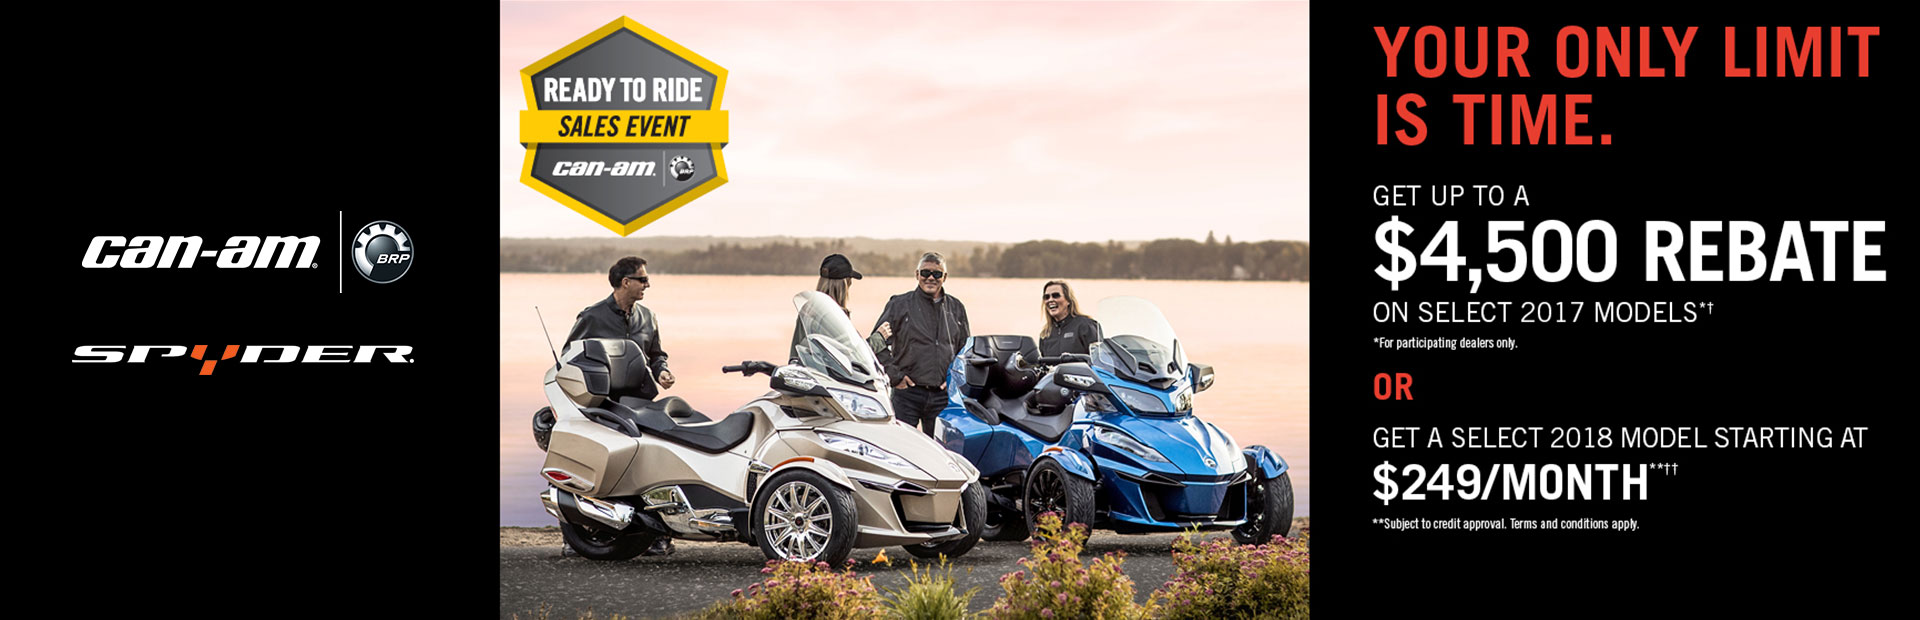 Can-Am: Ready to Ride Sales Event - 2017 Models (Spyder)